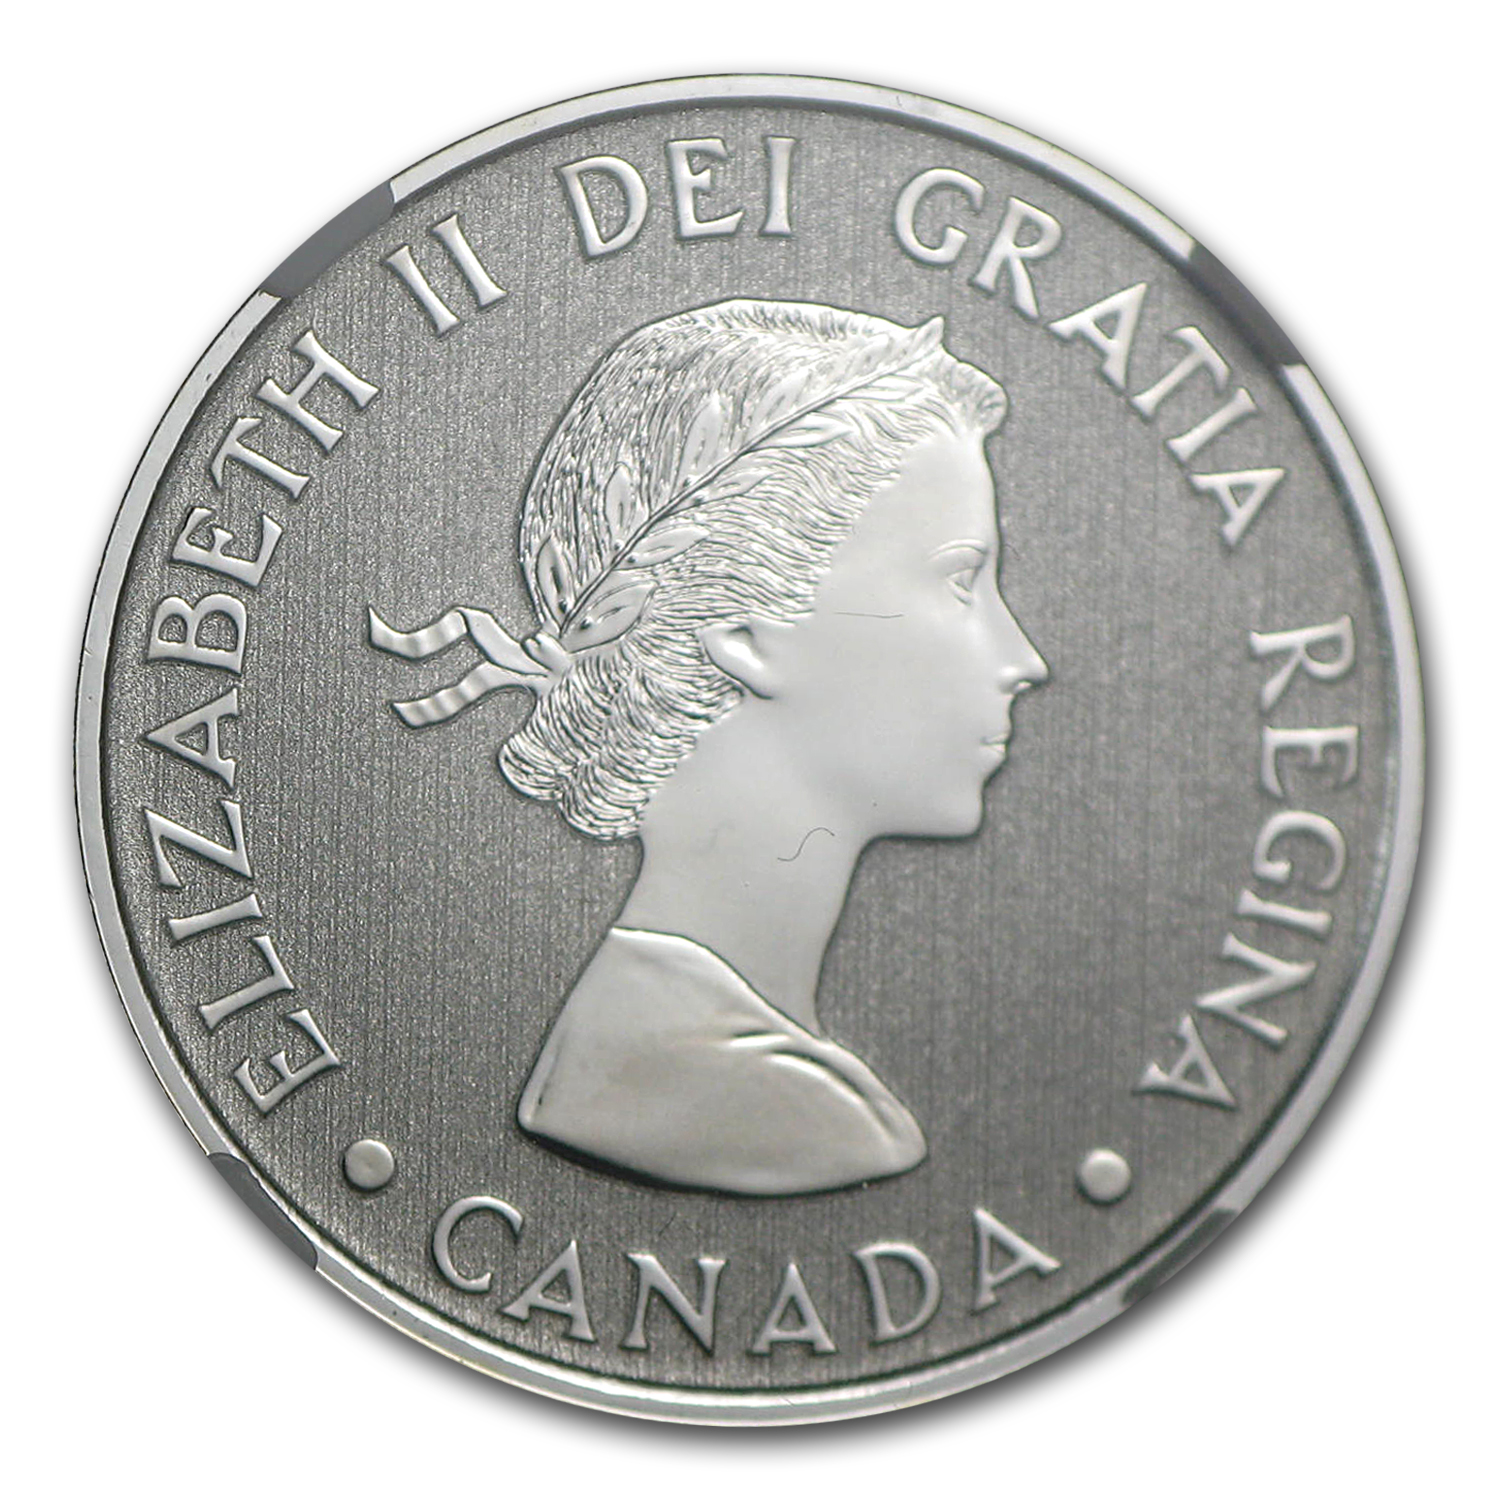 2012 Canada 1/4 oz Silver $20 Diamond Jubilee SP-69 NGC